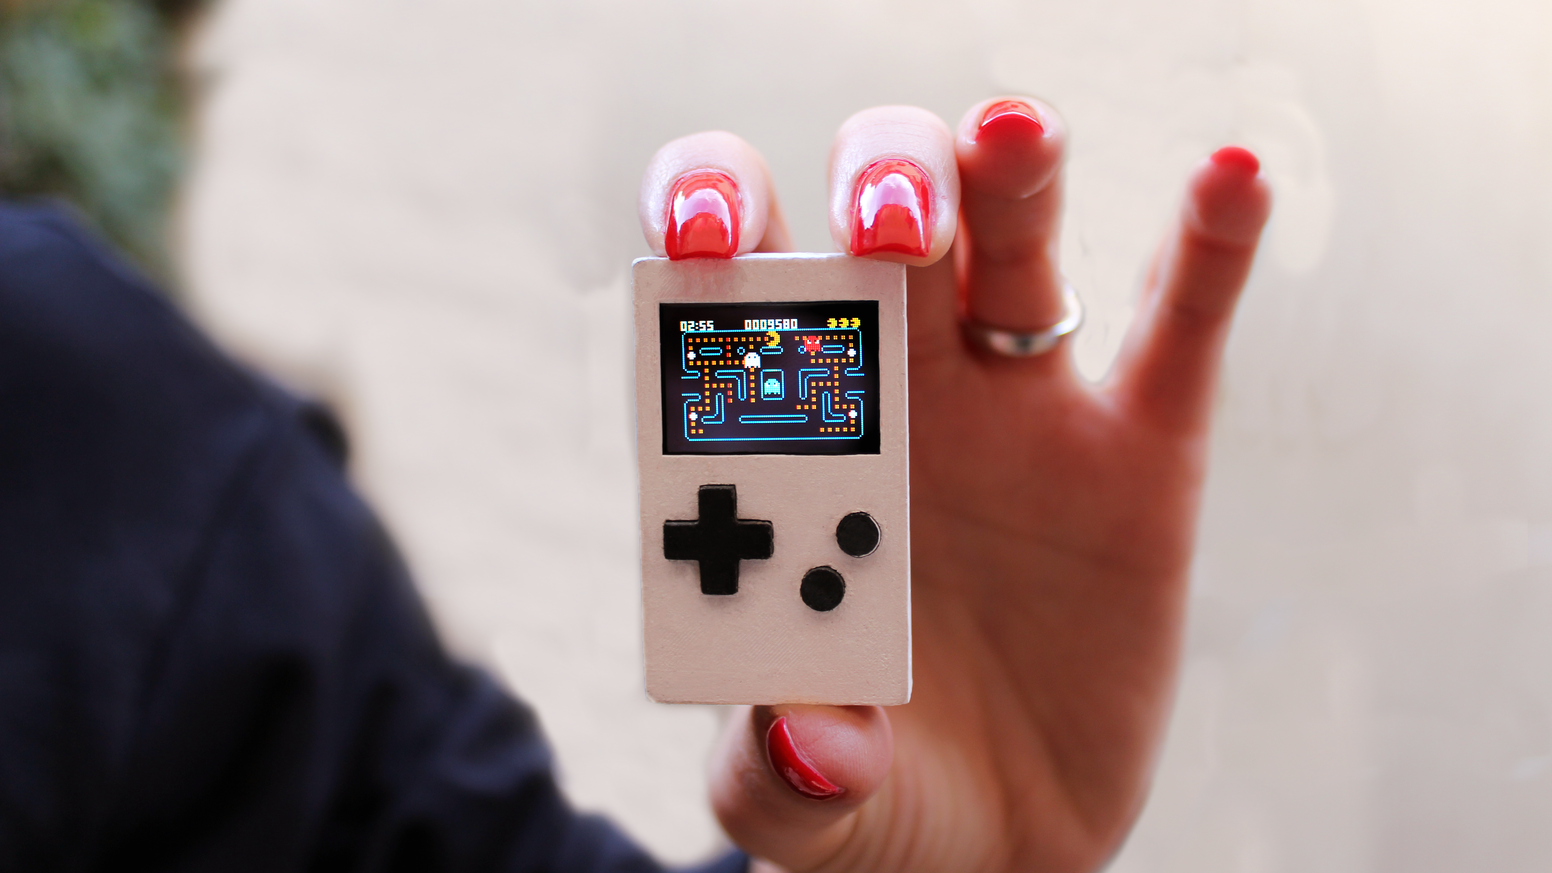 A tiny keychain sized device for retro games inspired by the Gameboy of the late 80s!